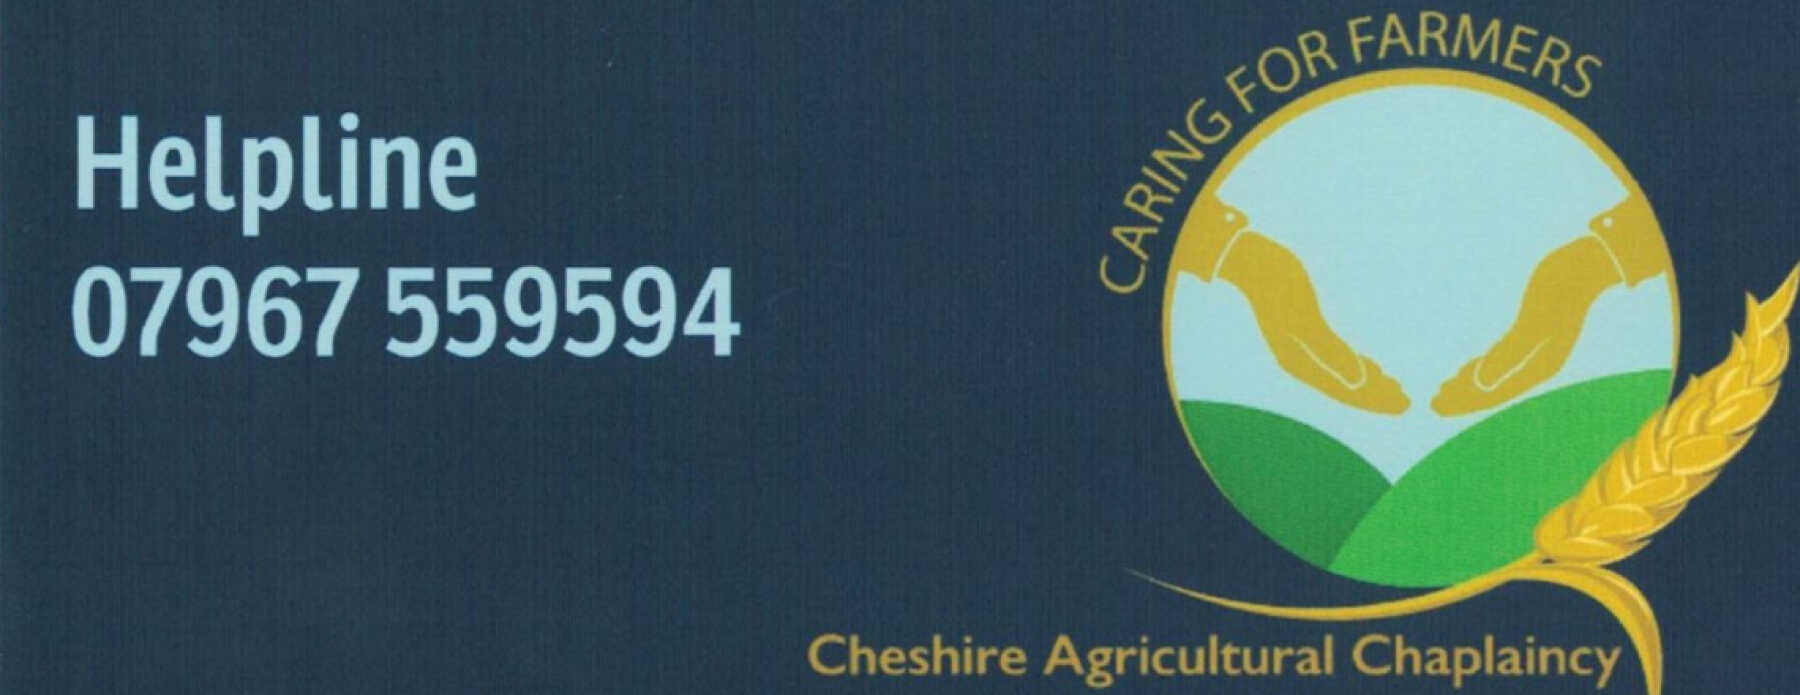 Featured Image for Cheshire Agricultural Chaplaincy